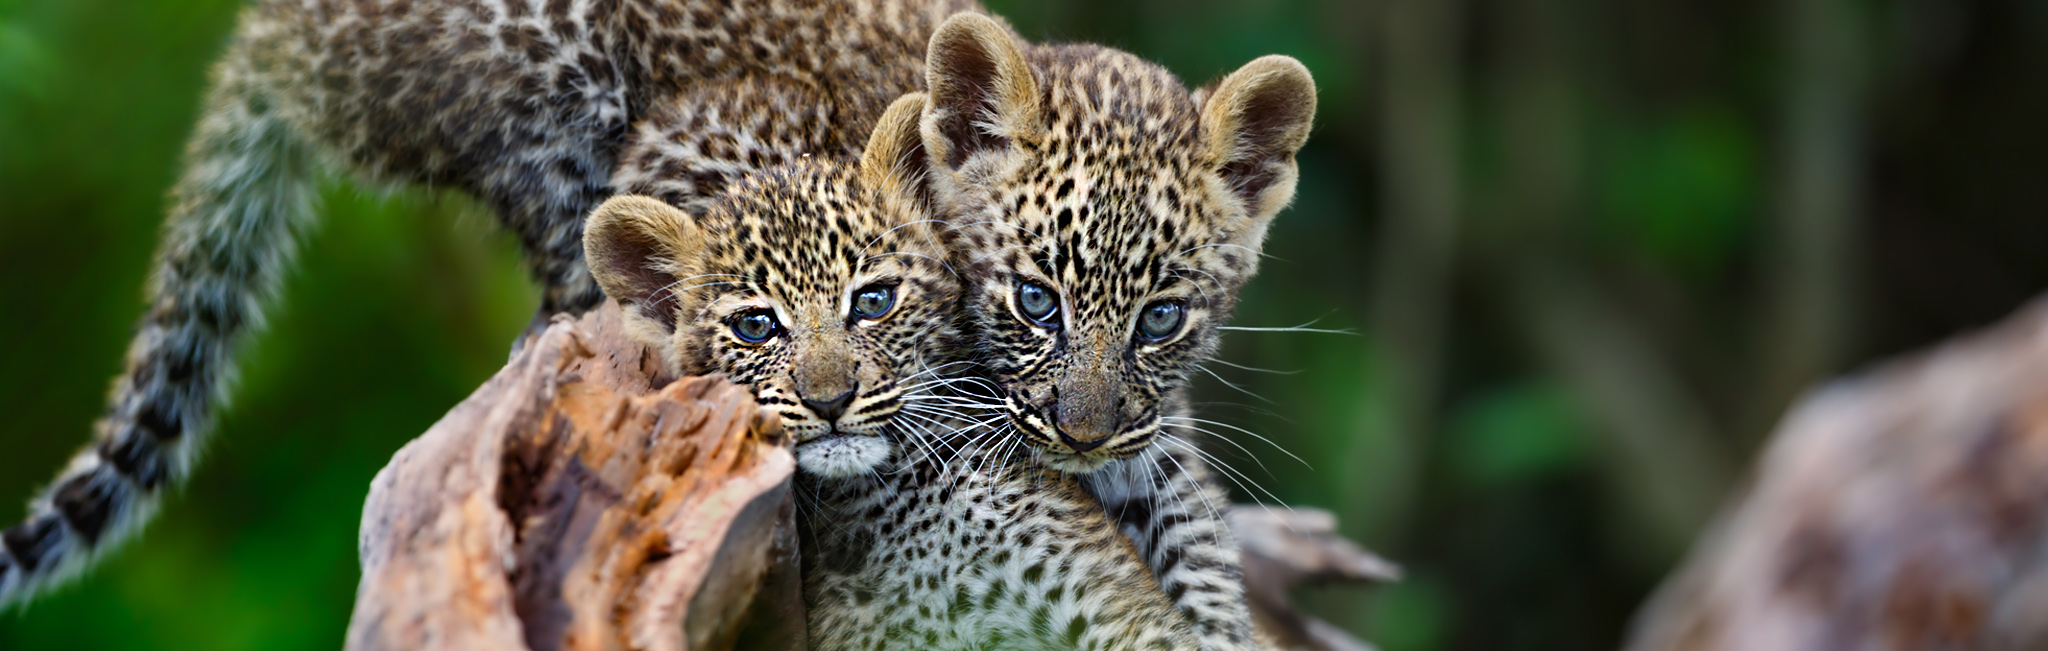 Tanzania Safaris - Pair of leopard cubs